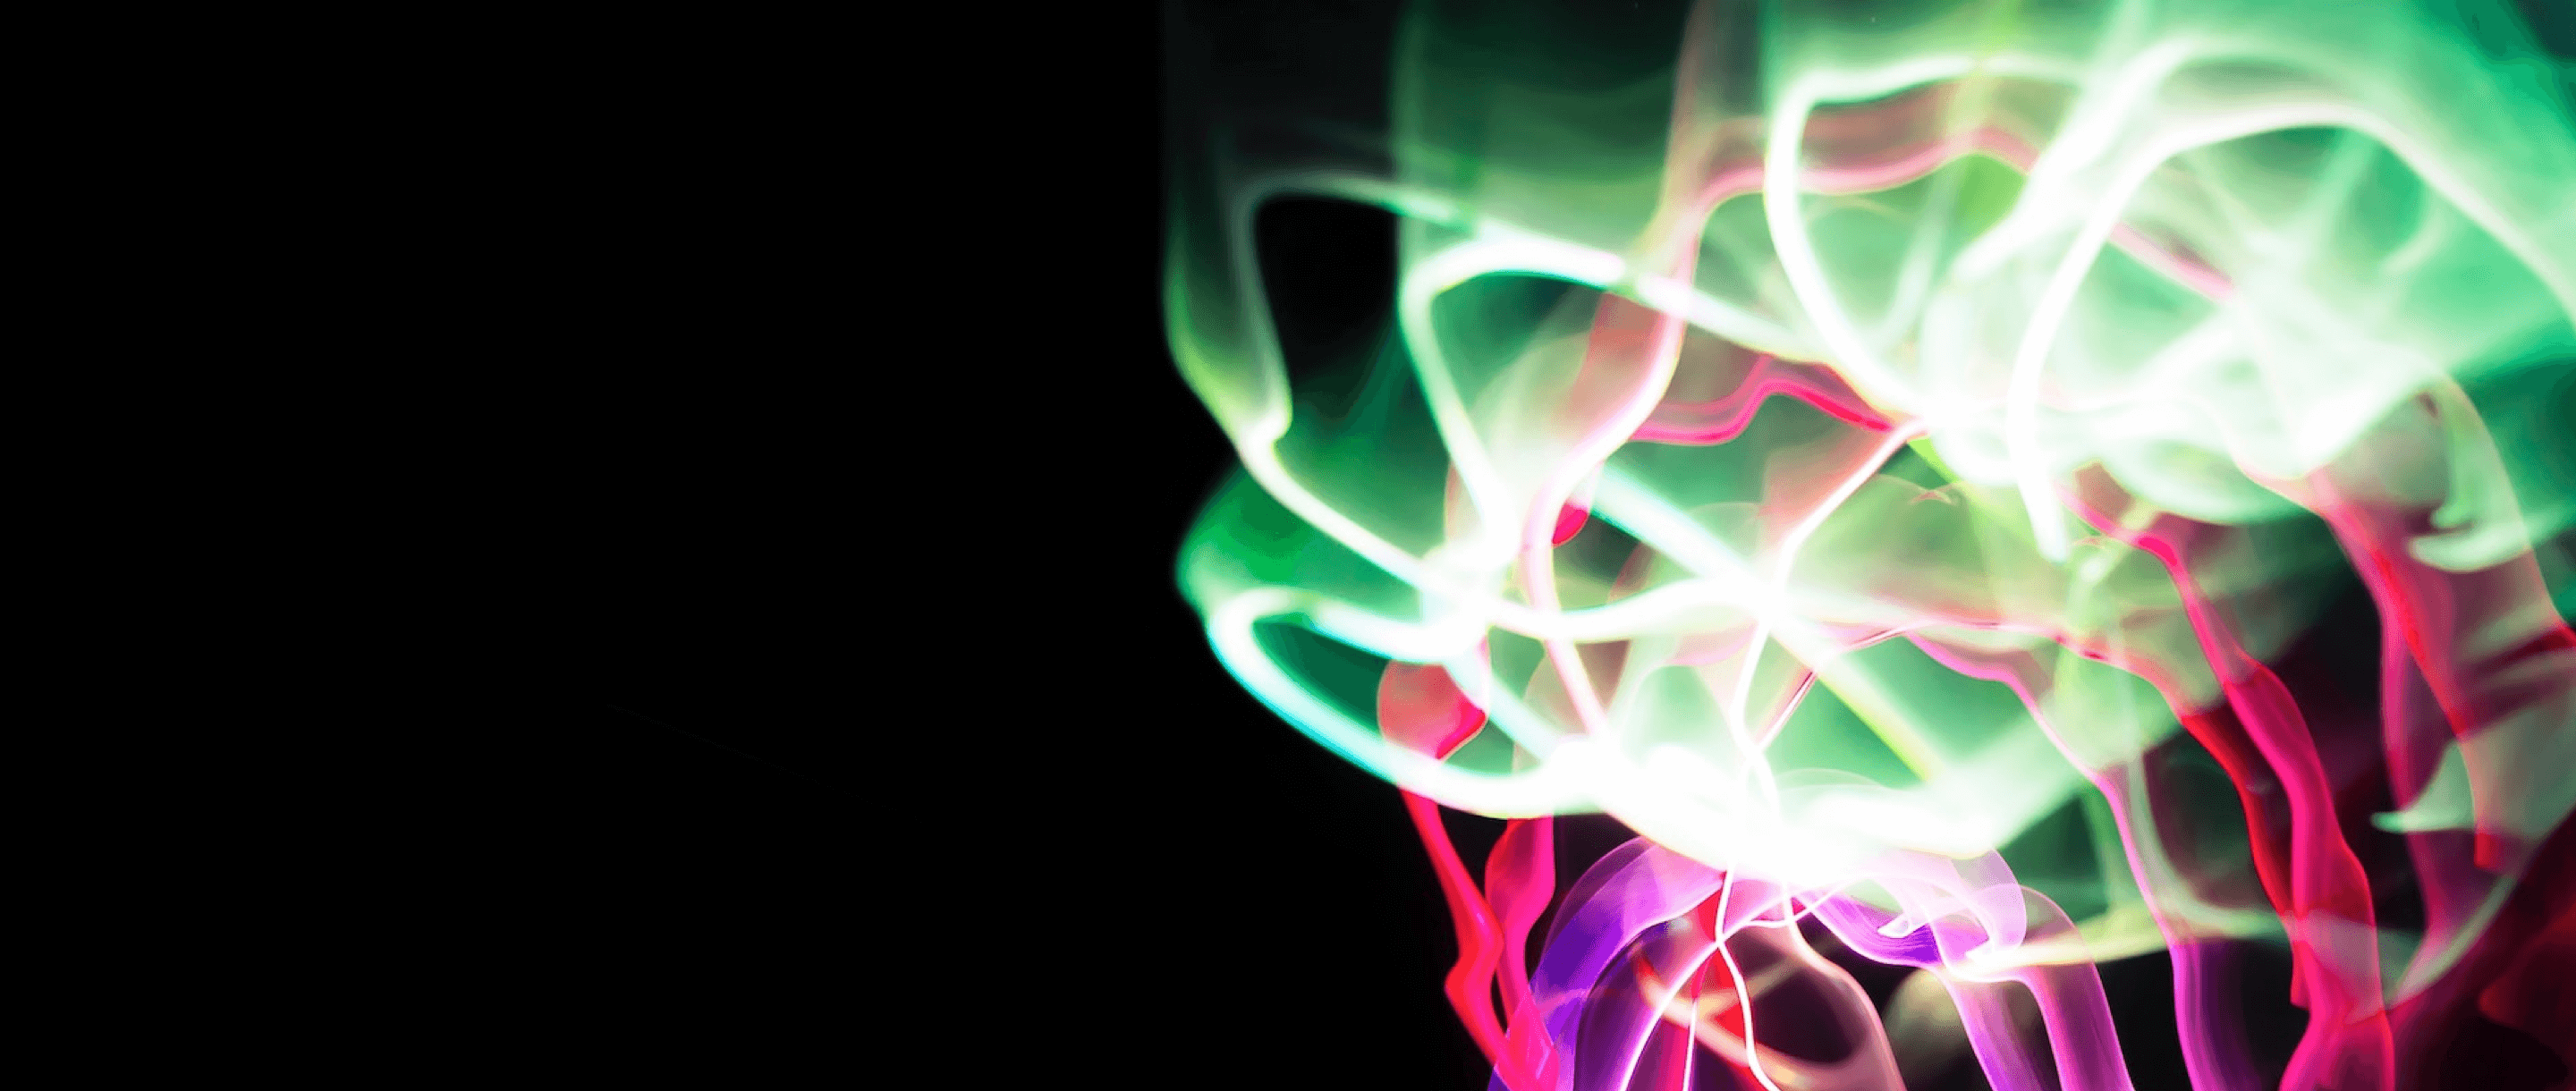 Image of cool light effects with different colours on black background